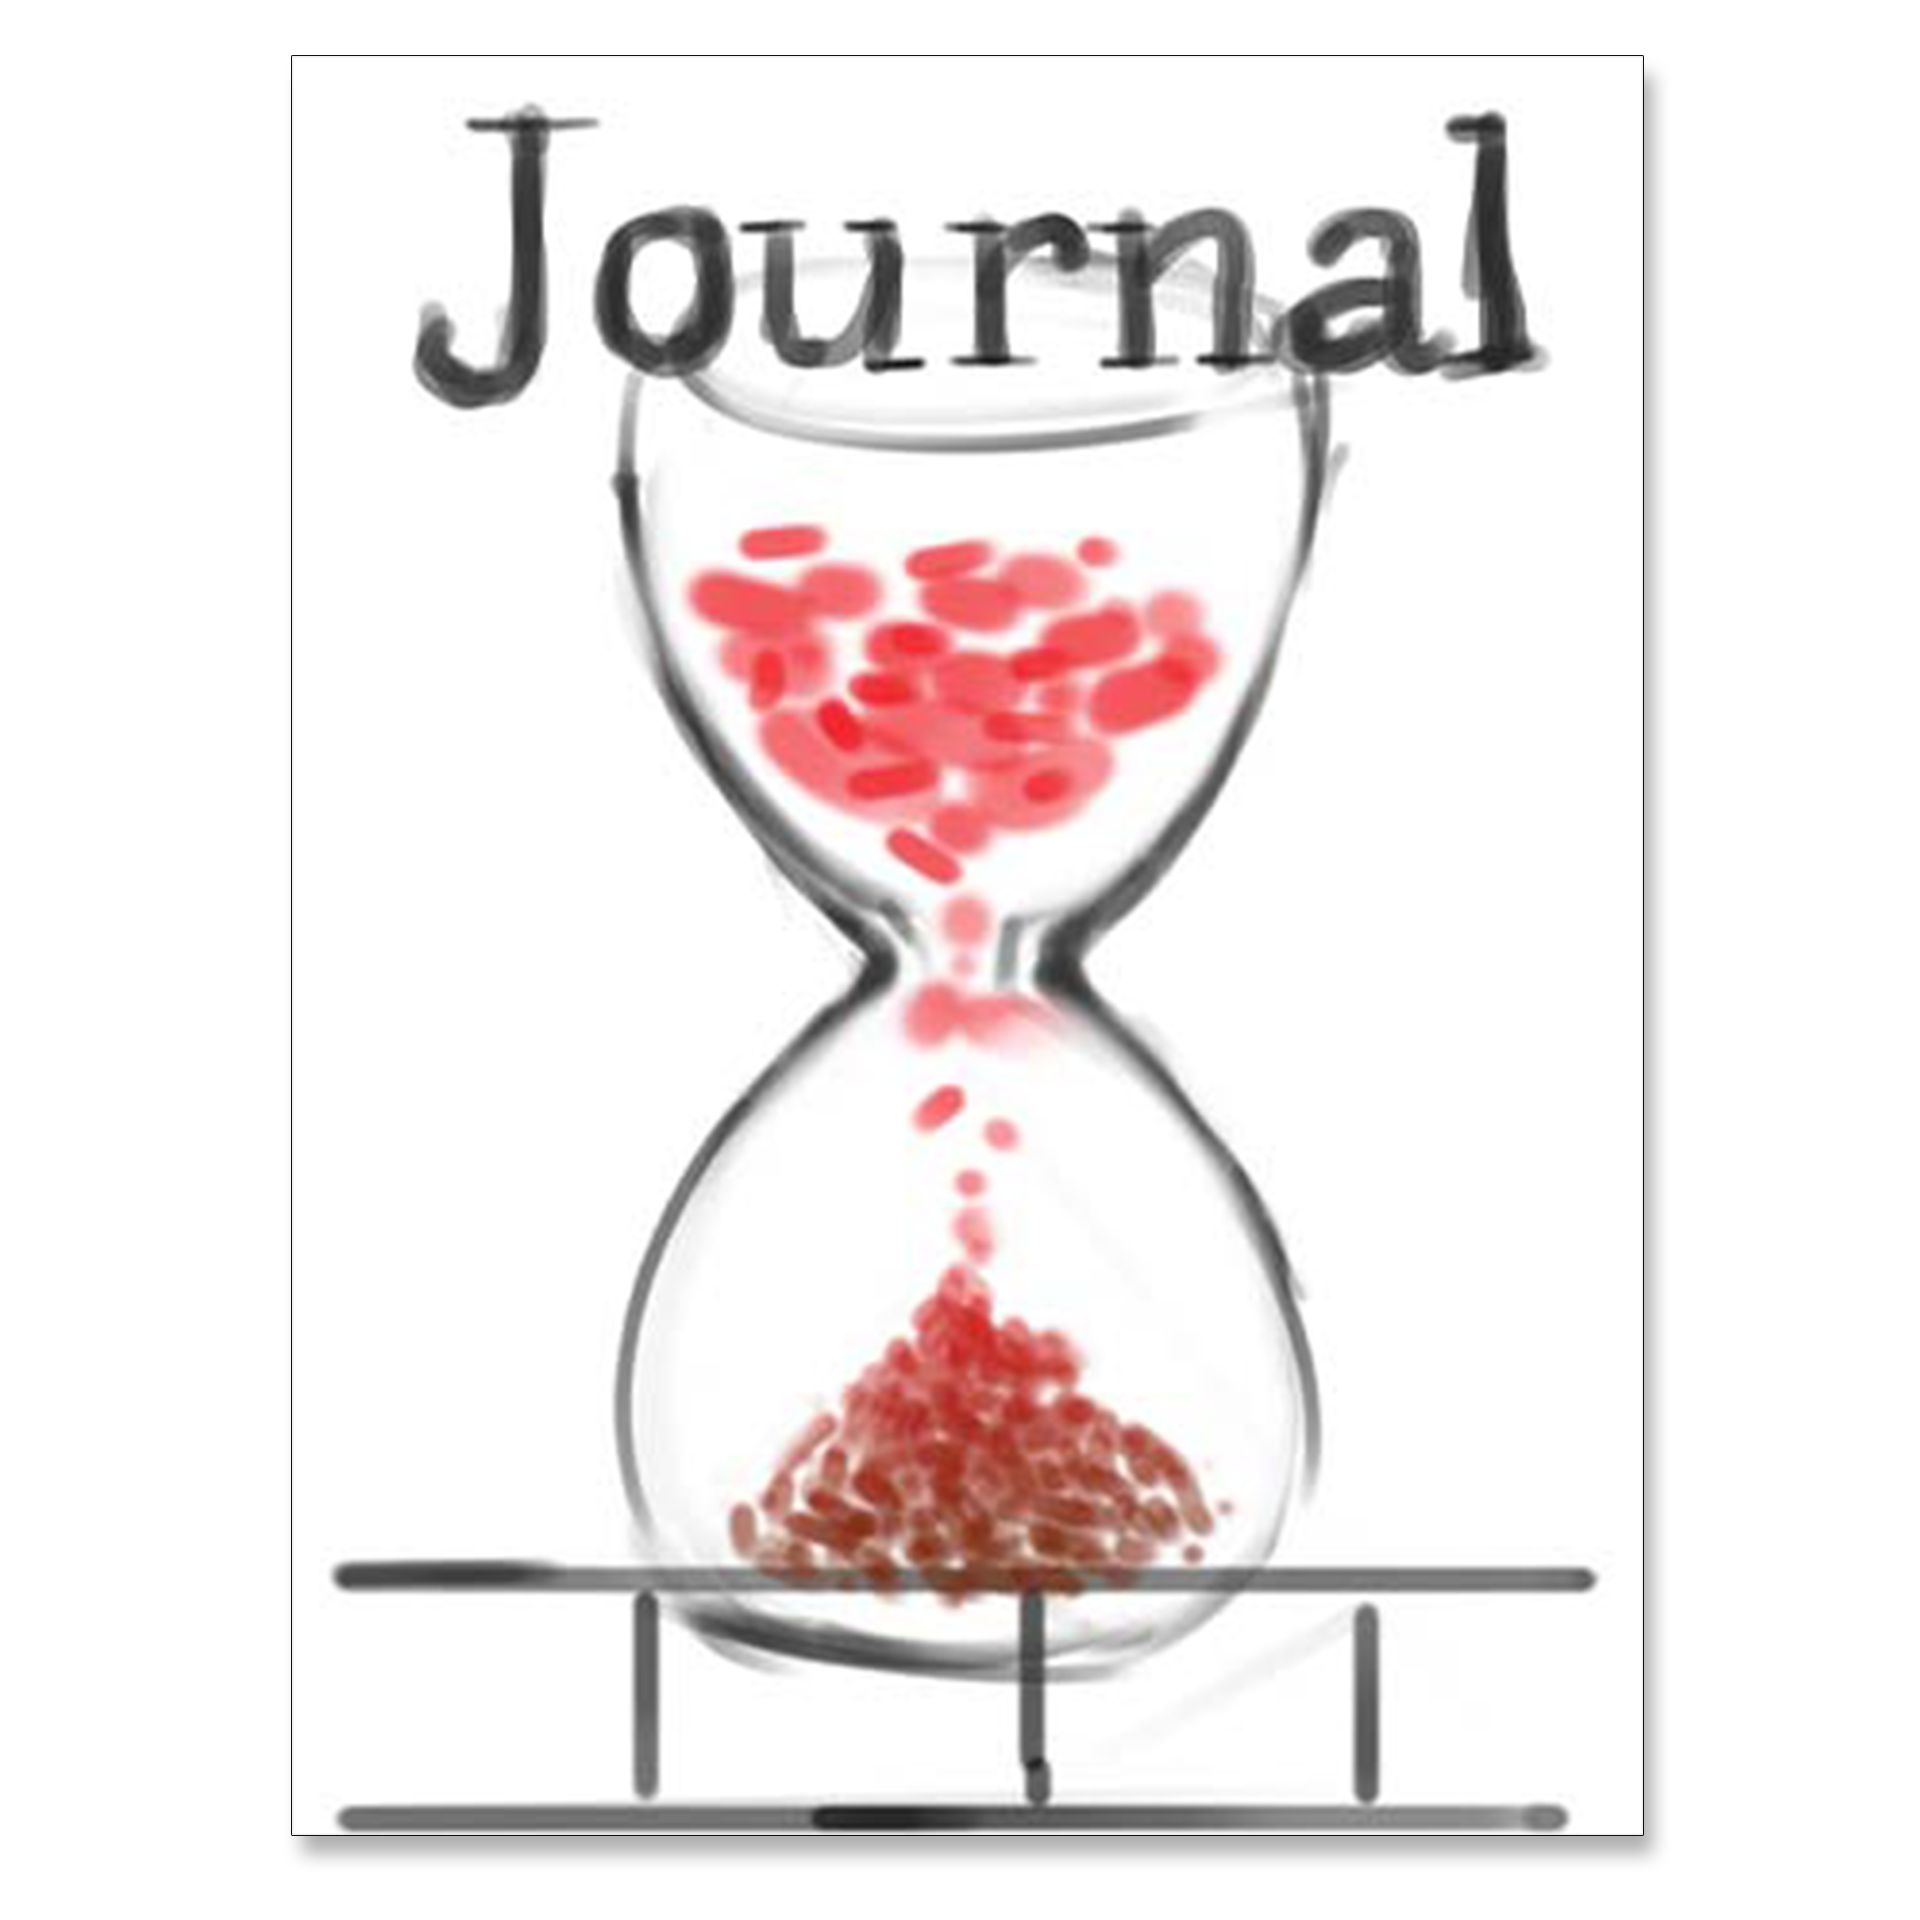 journal-image-01.png